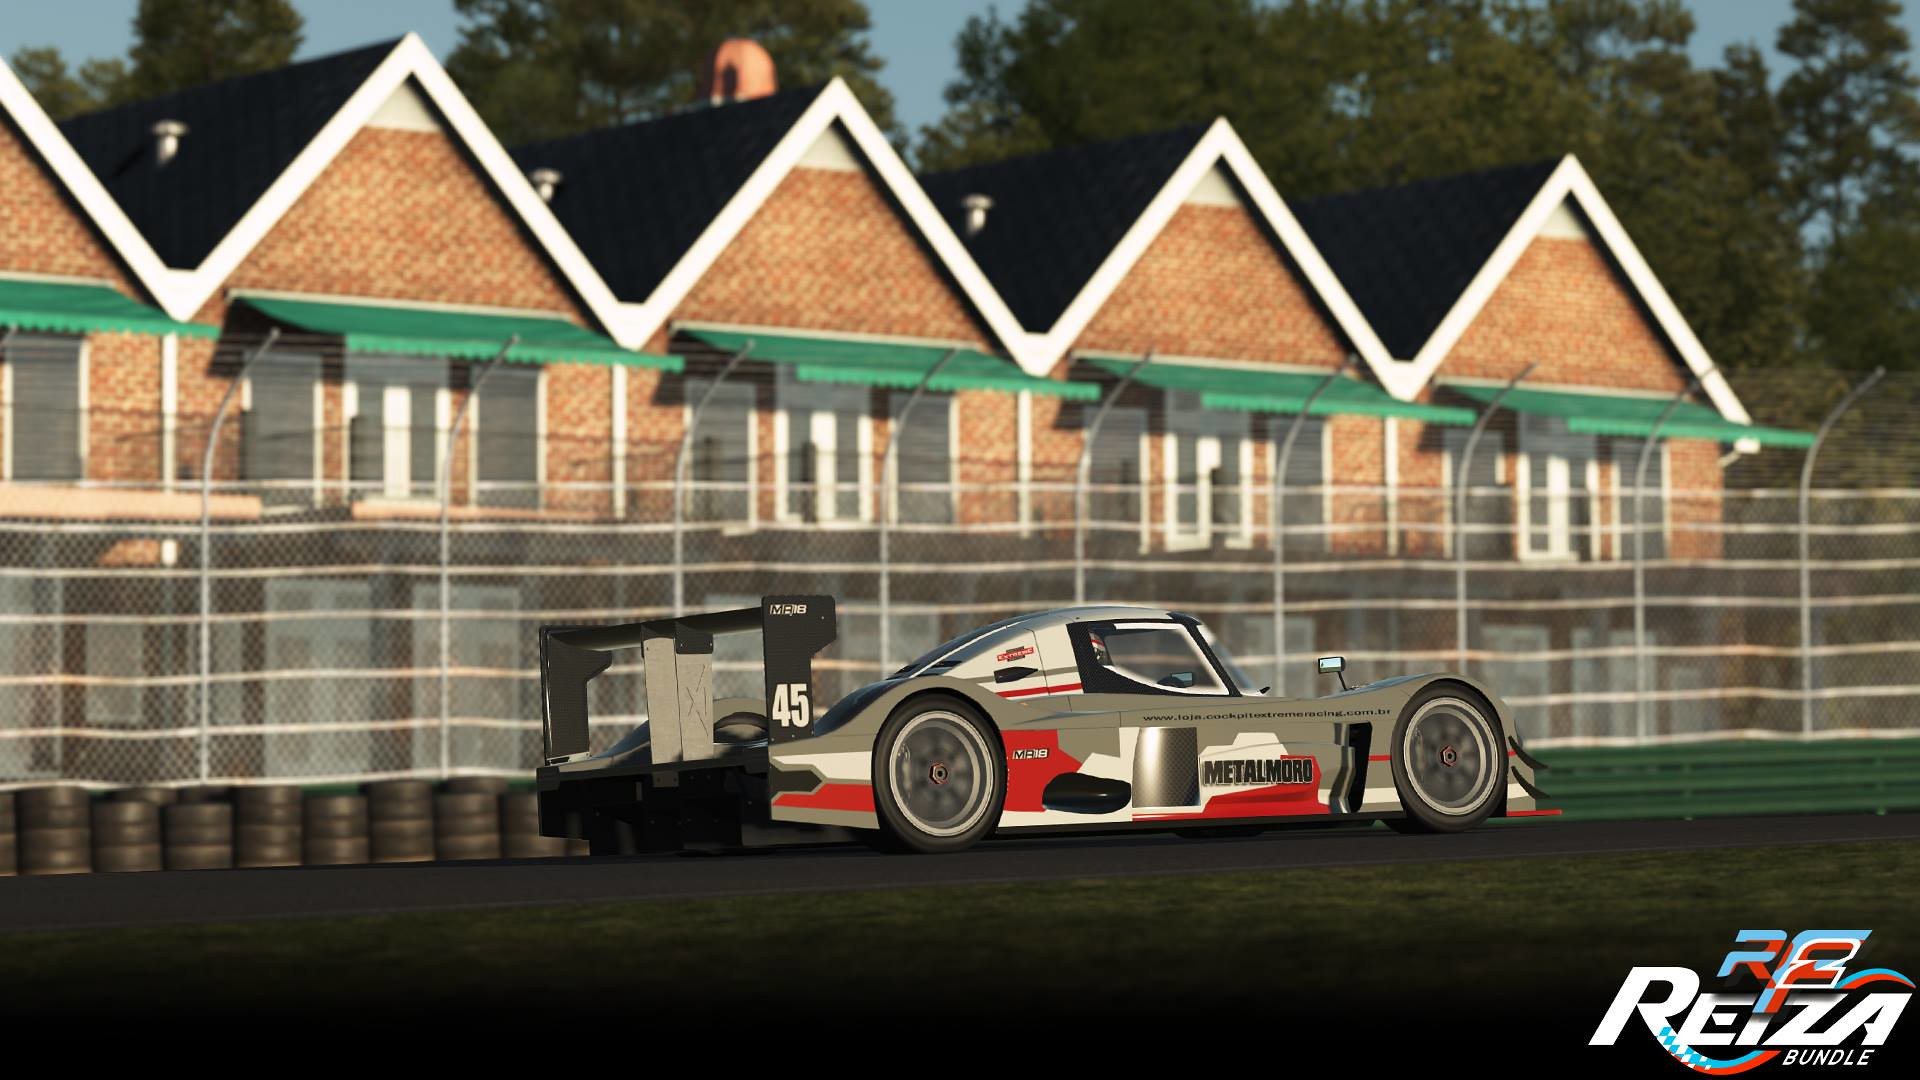 rFactor 2 - Reiza Bundle DLC VIRginia International Raceway Previews 4